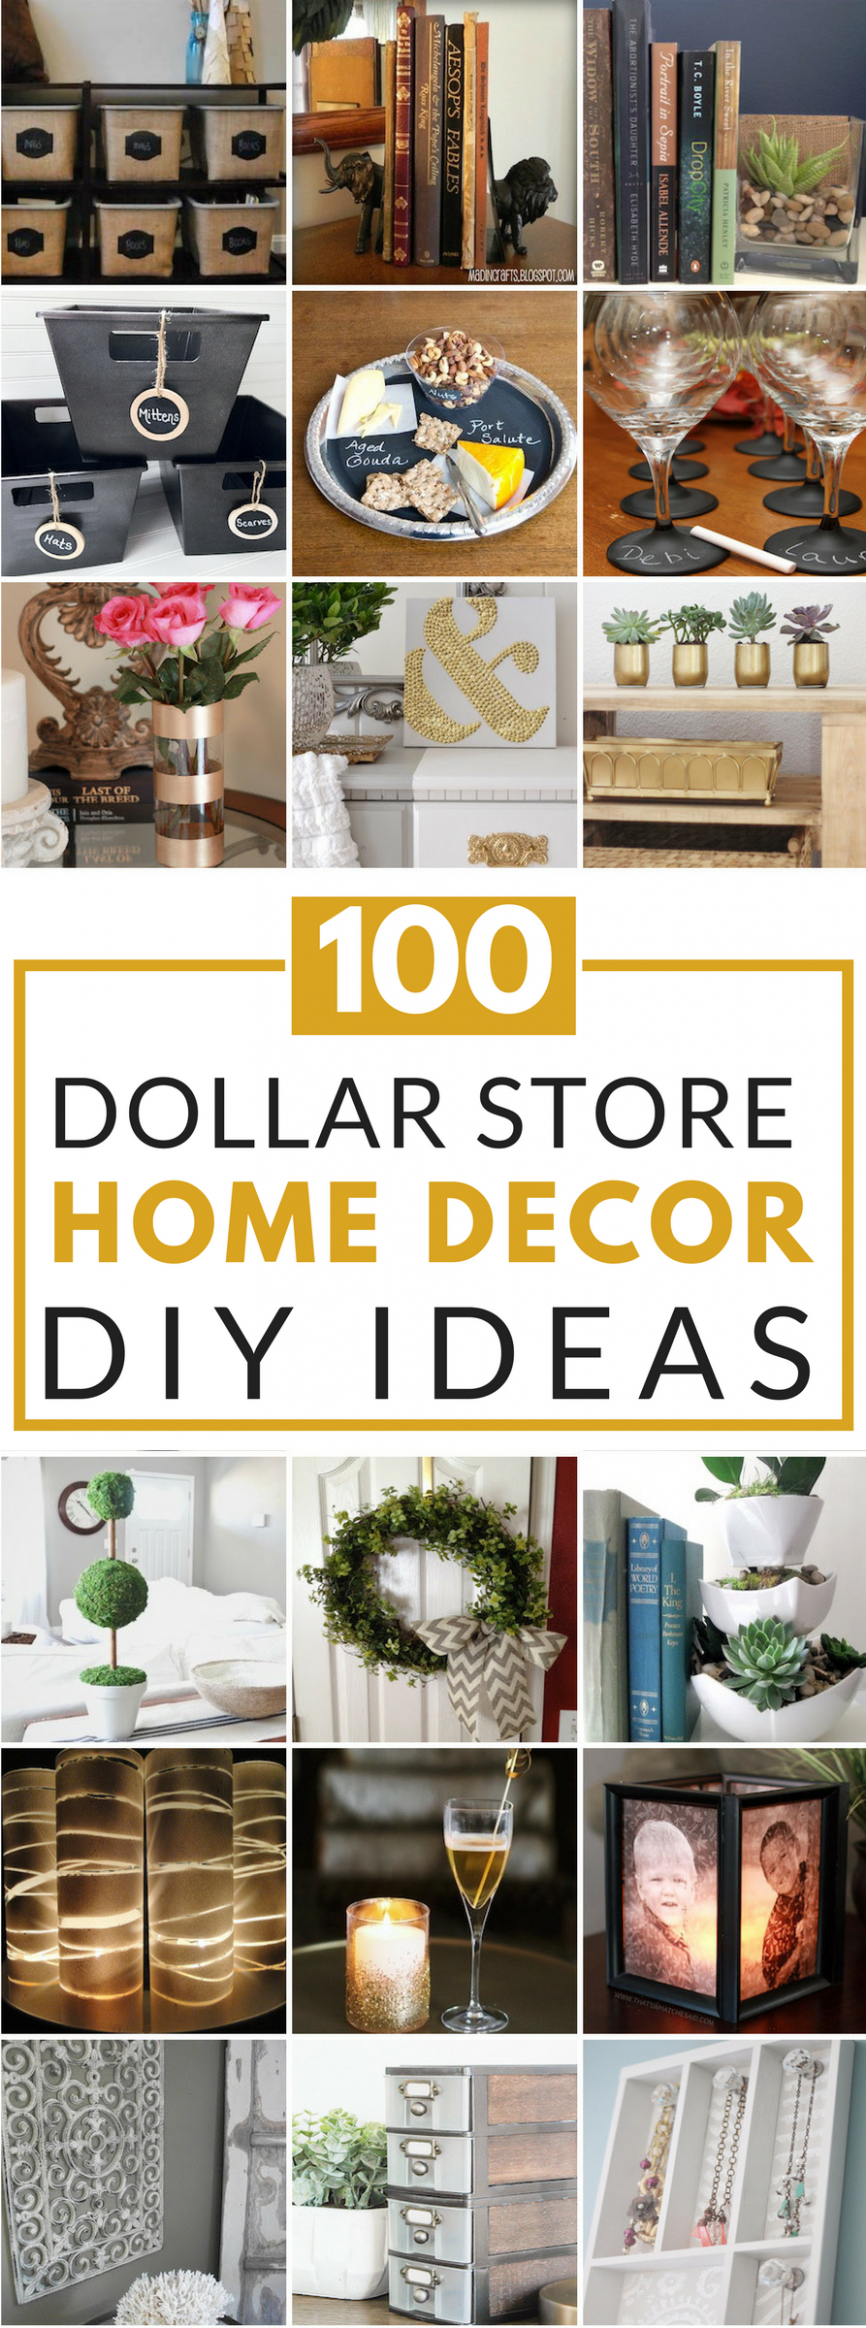 12 Dollar Store DIY Home Decor Ideas | Easy home decor, Dollar ..